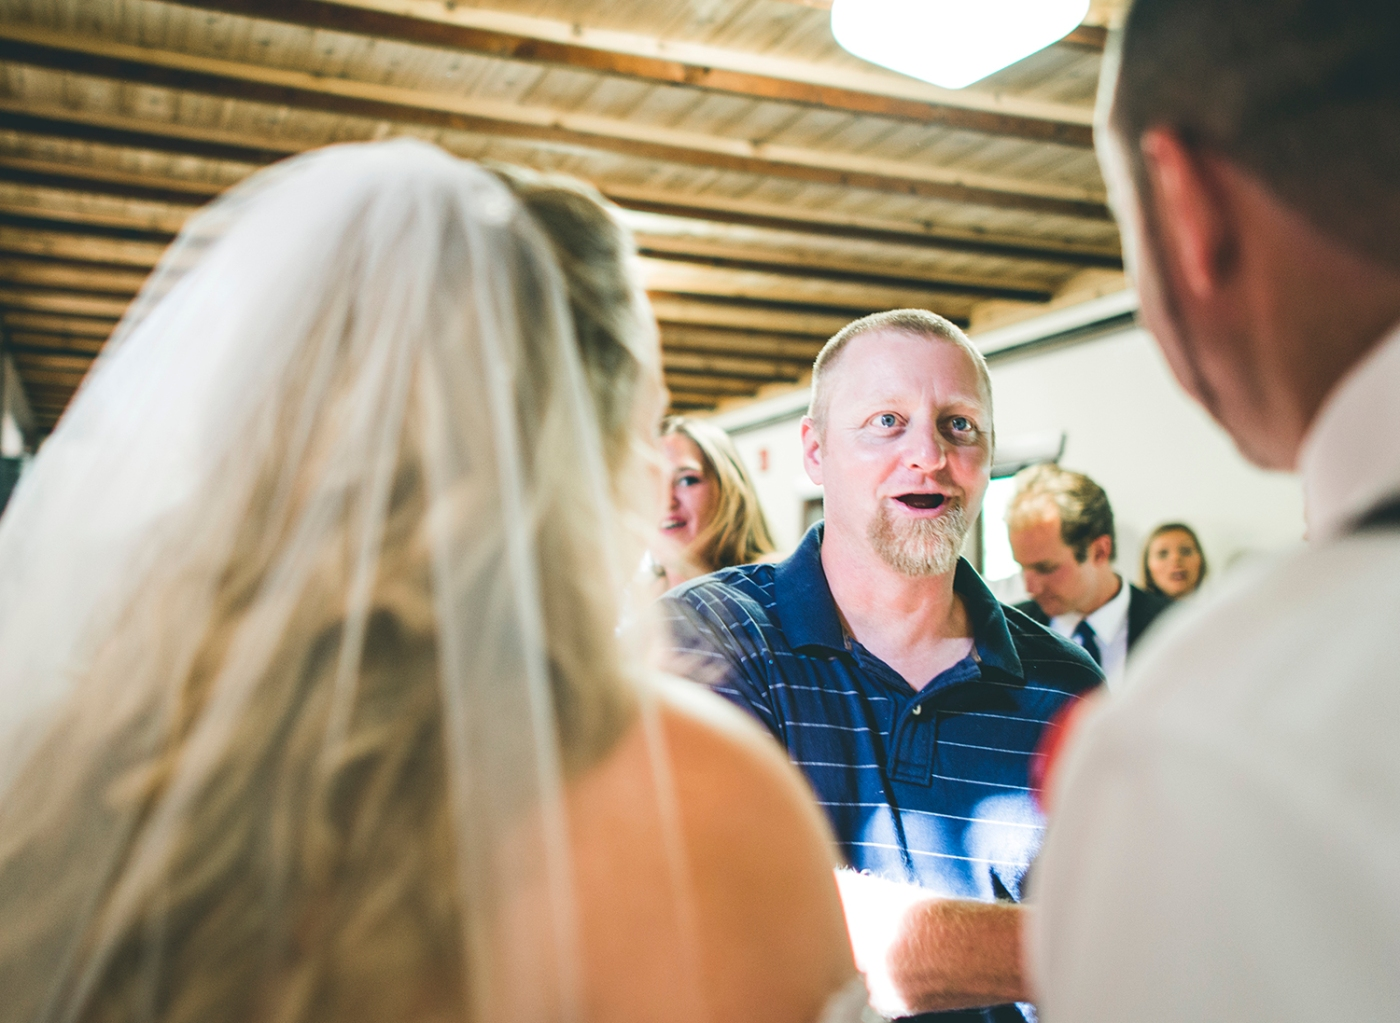 Jane_Speleers_Seattle_photography_Katie_and_Steve_2016_Des_Moines_Marina_Wedding_DSC_1899